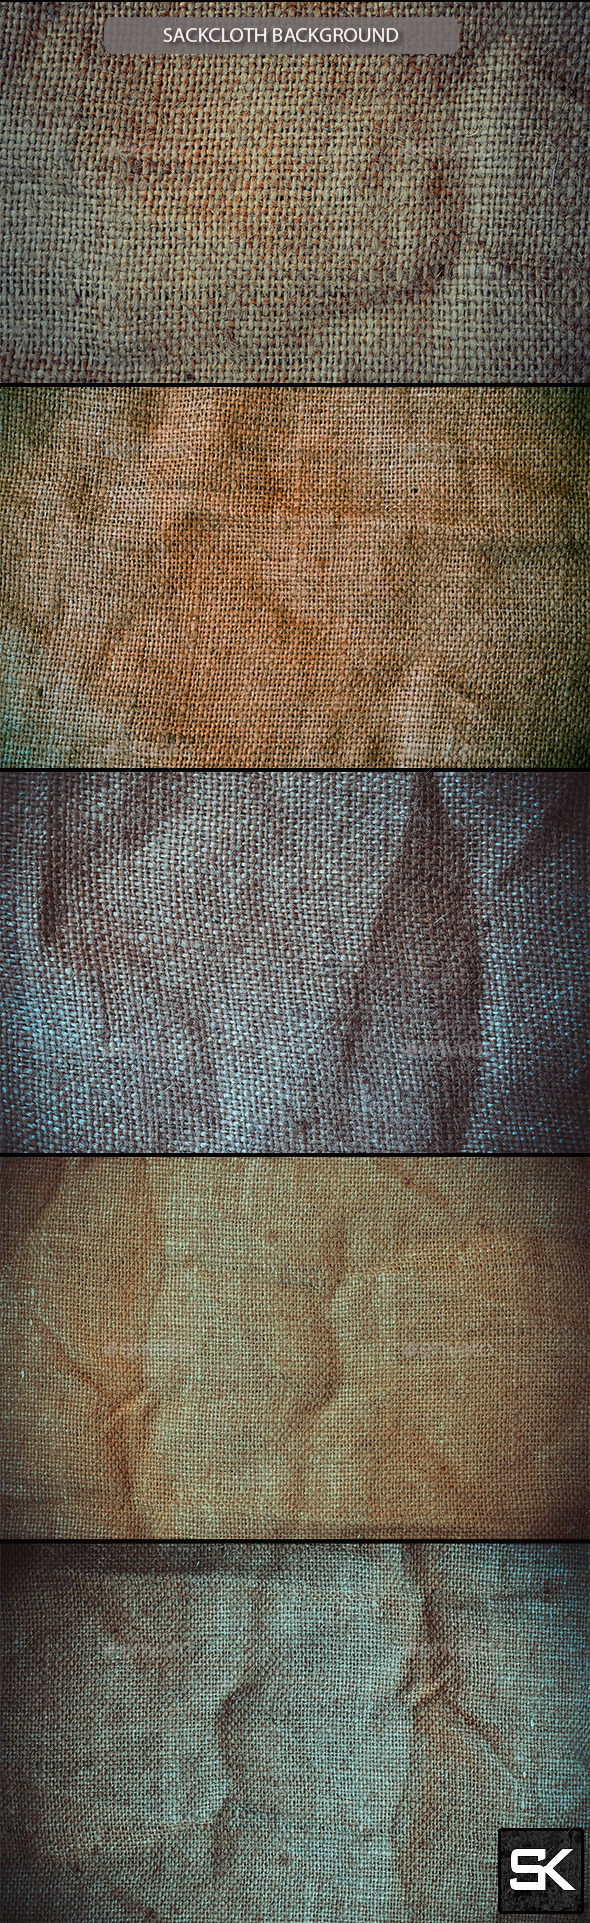 Sackcloth Background - Miscellaneous Backgrounds